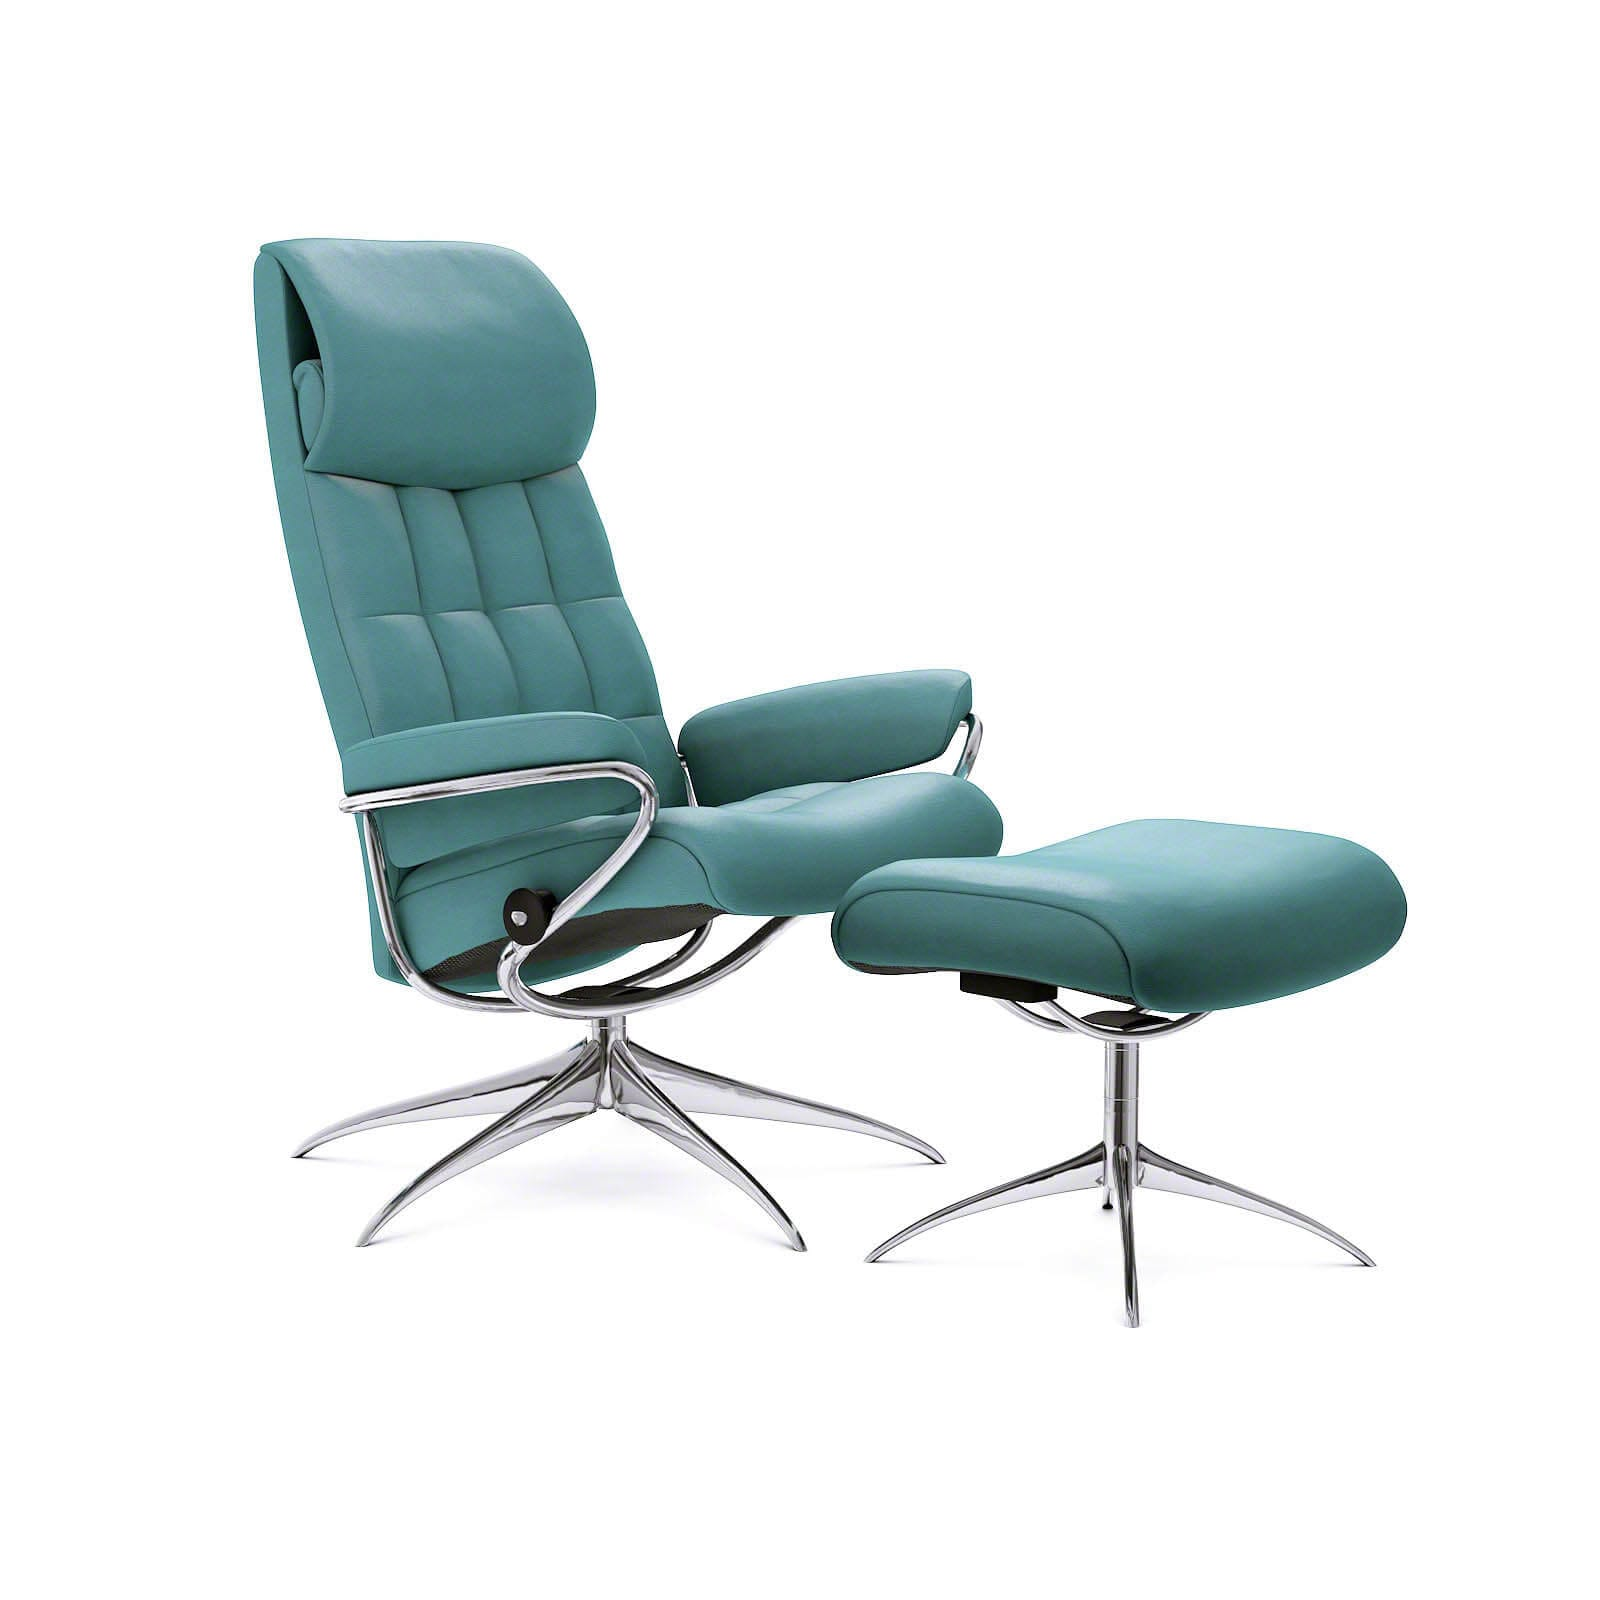 stressless london sessel mit hoher lehne paloma aqua green. Black Bedroom Furniture Sets. Home Design Ideas